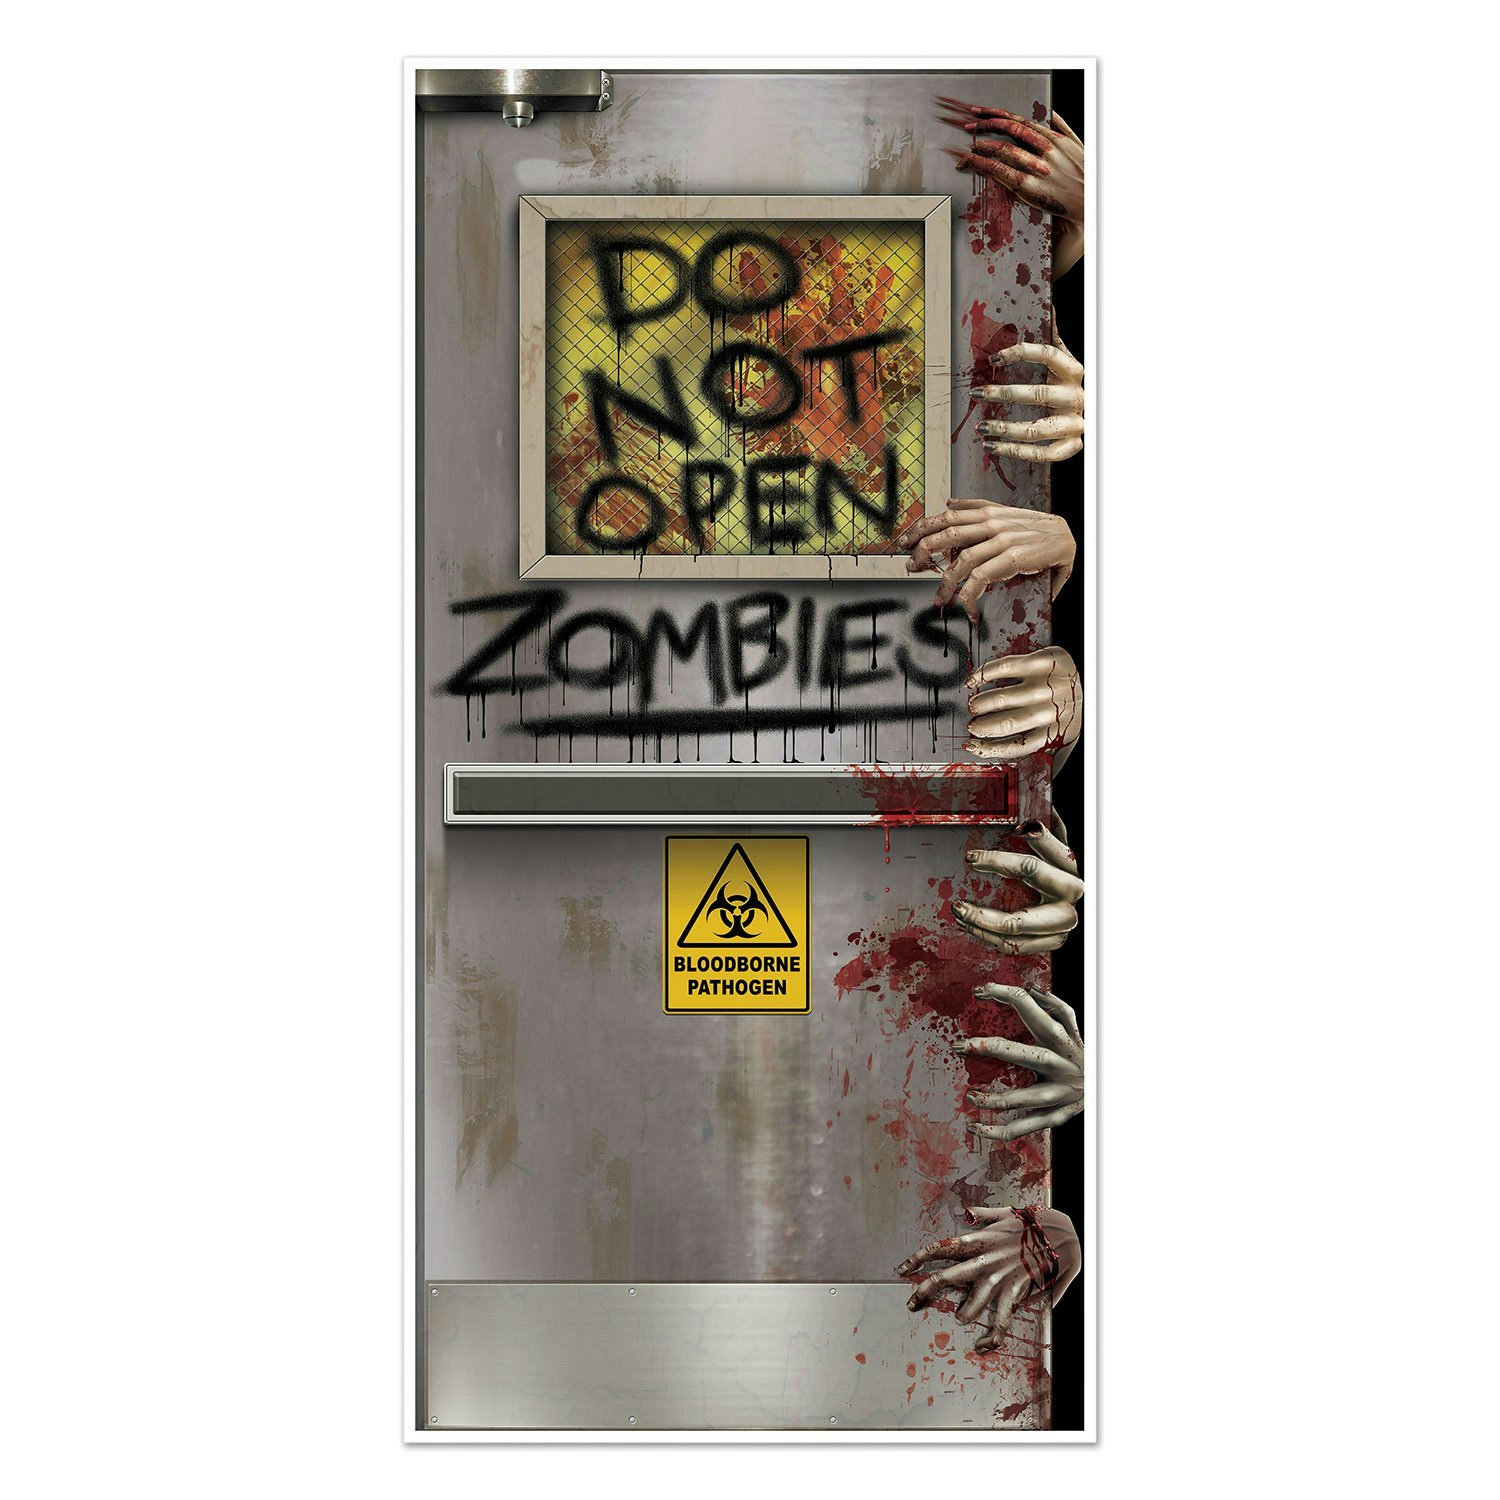 Beistle zombies lab door cover halloween decoration ebay for Decoration zombie